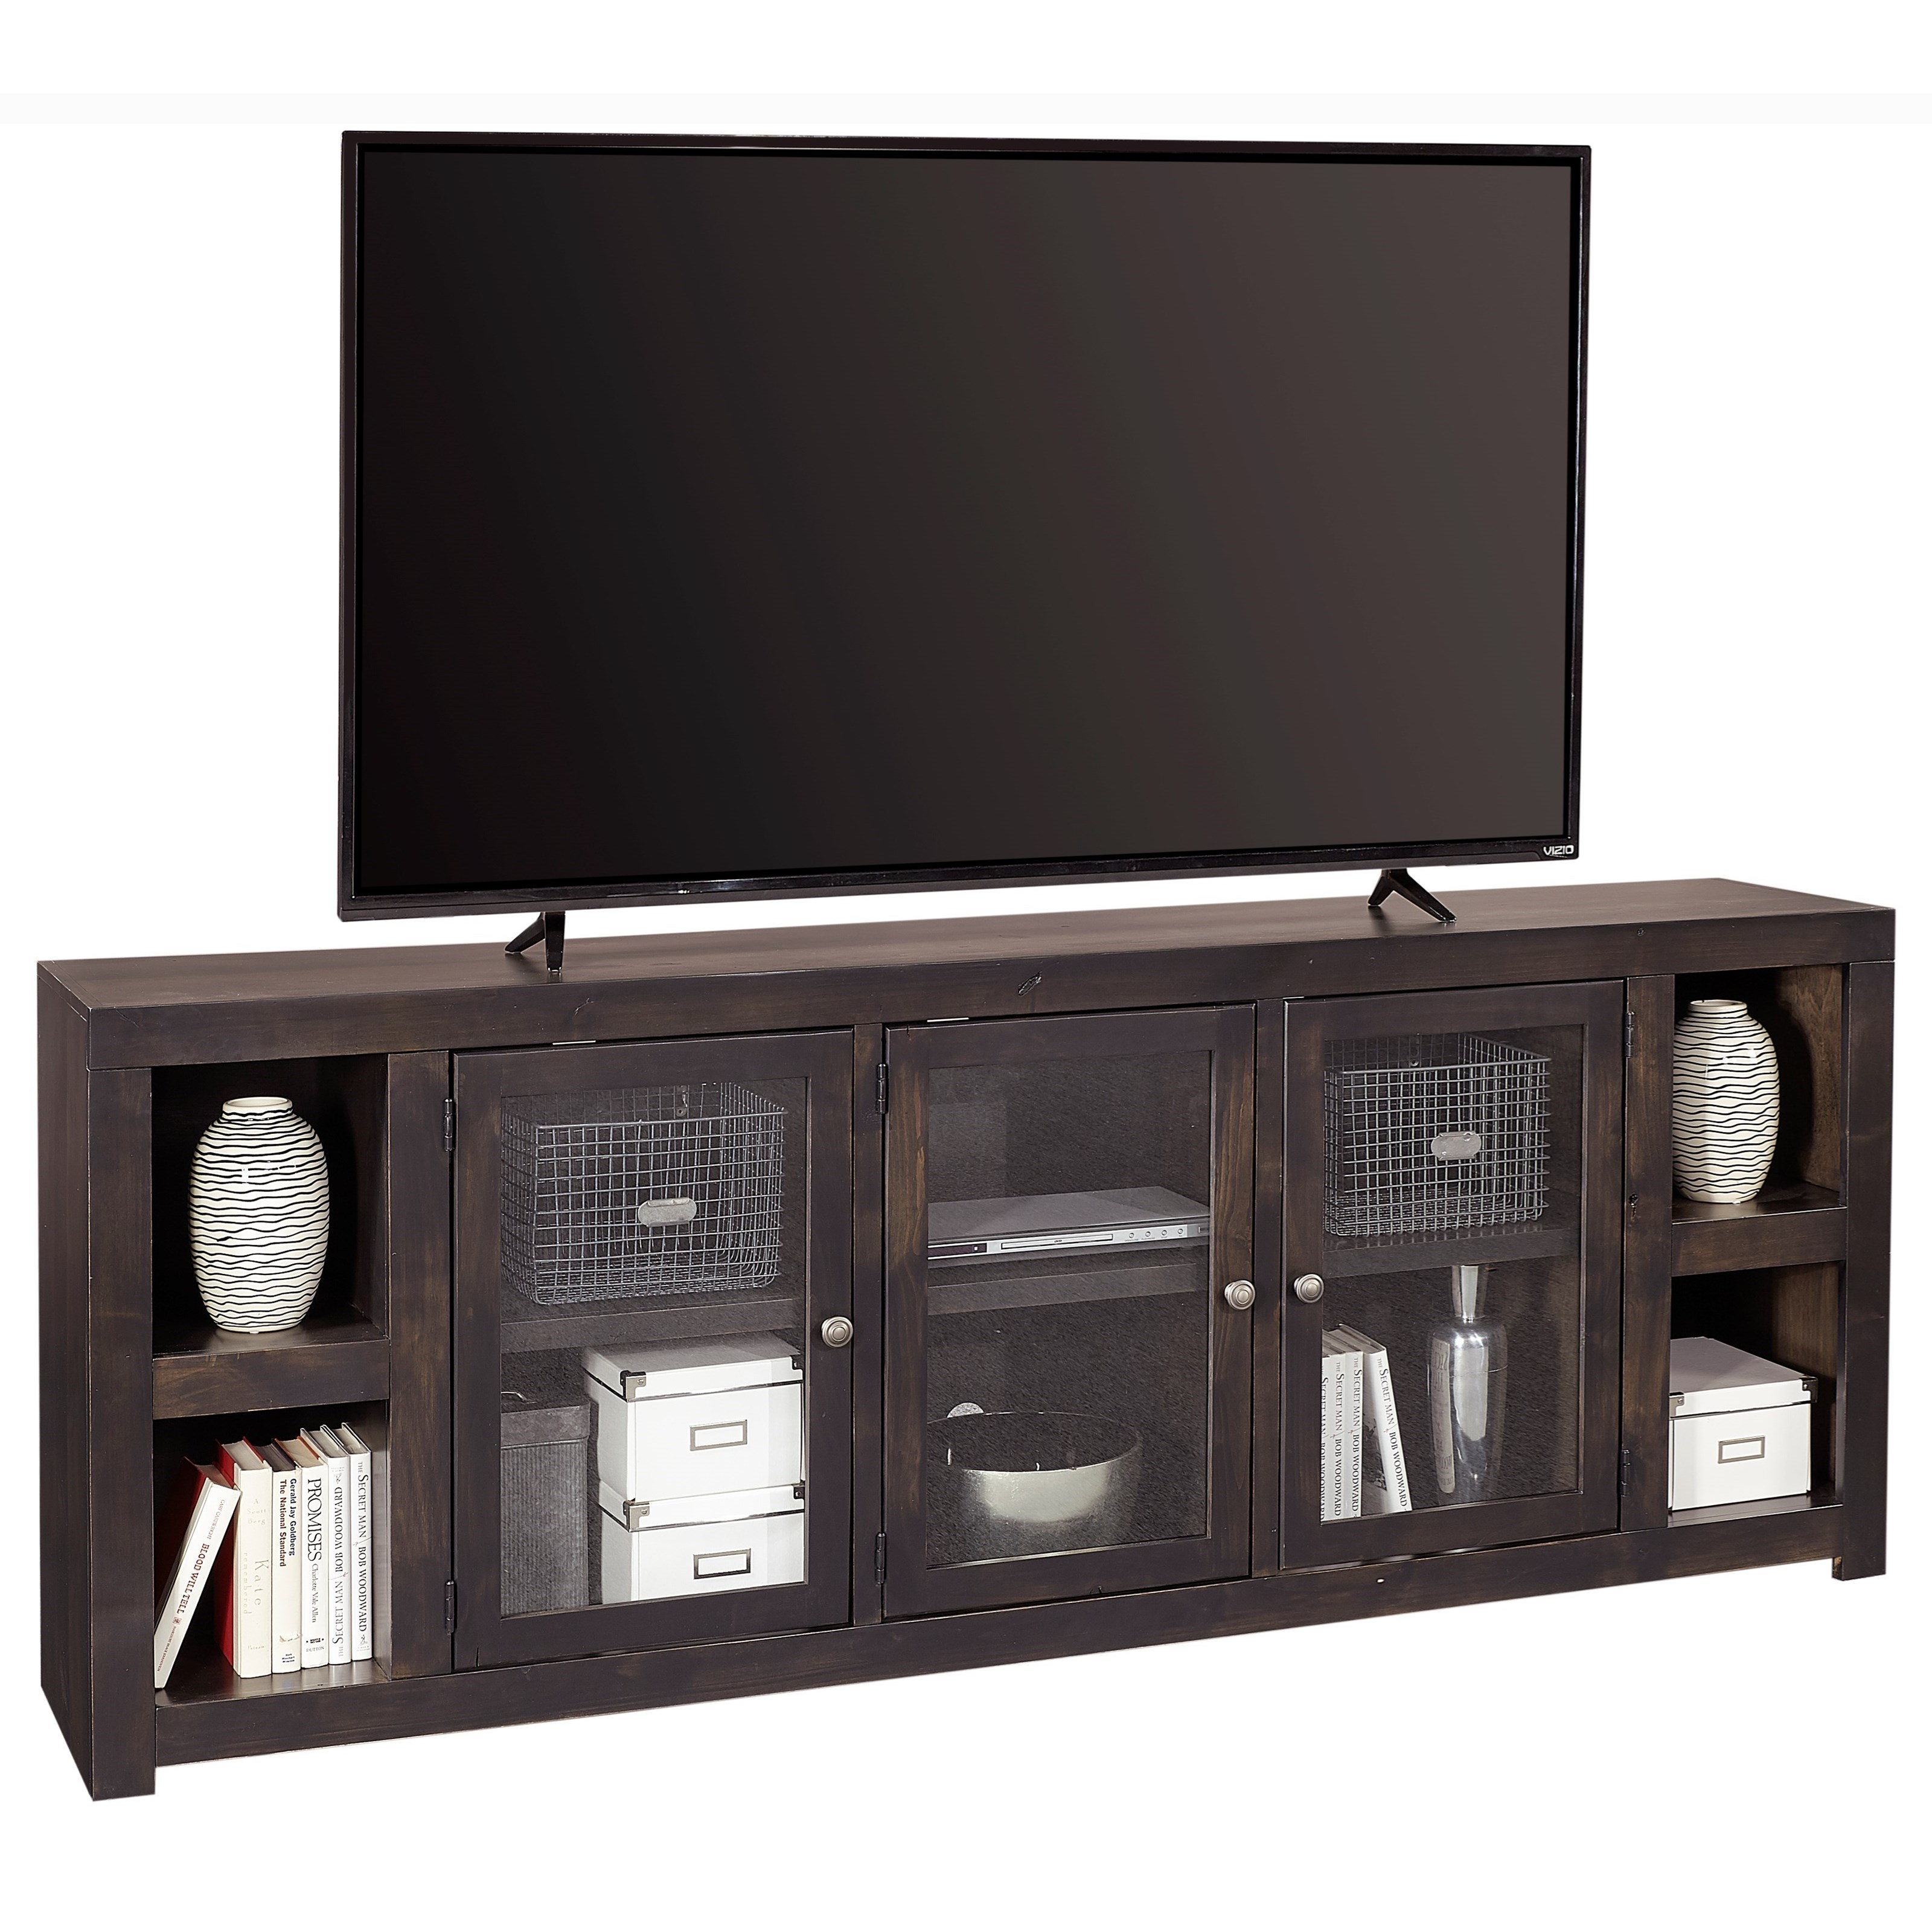 Avery Loft TV Console by Aspenhome at HomeWorld Furniture